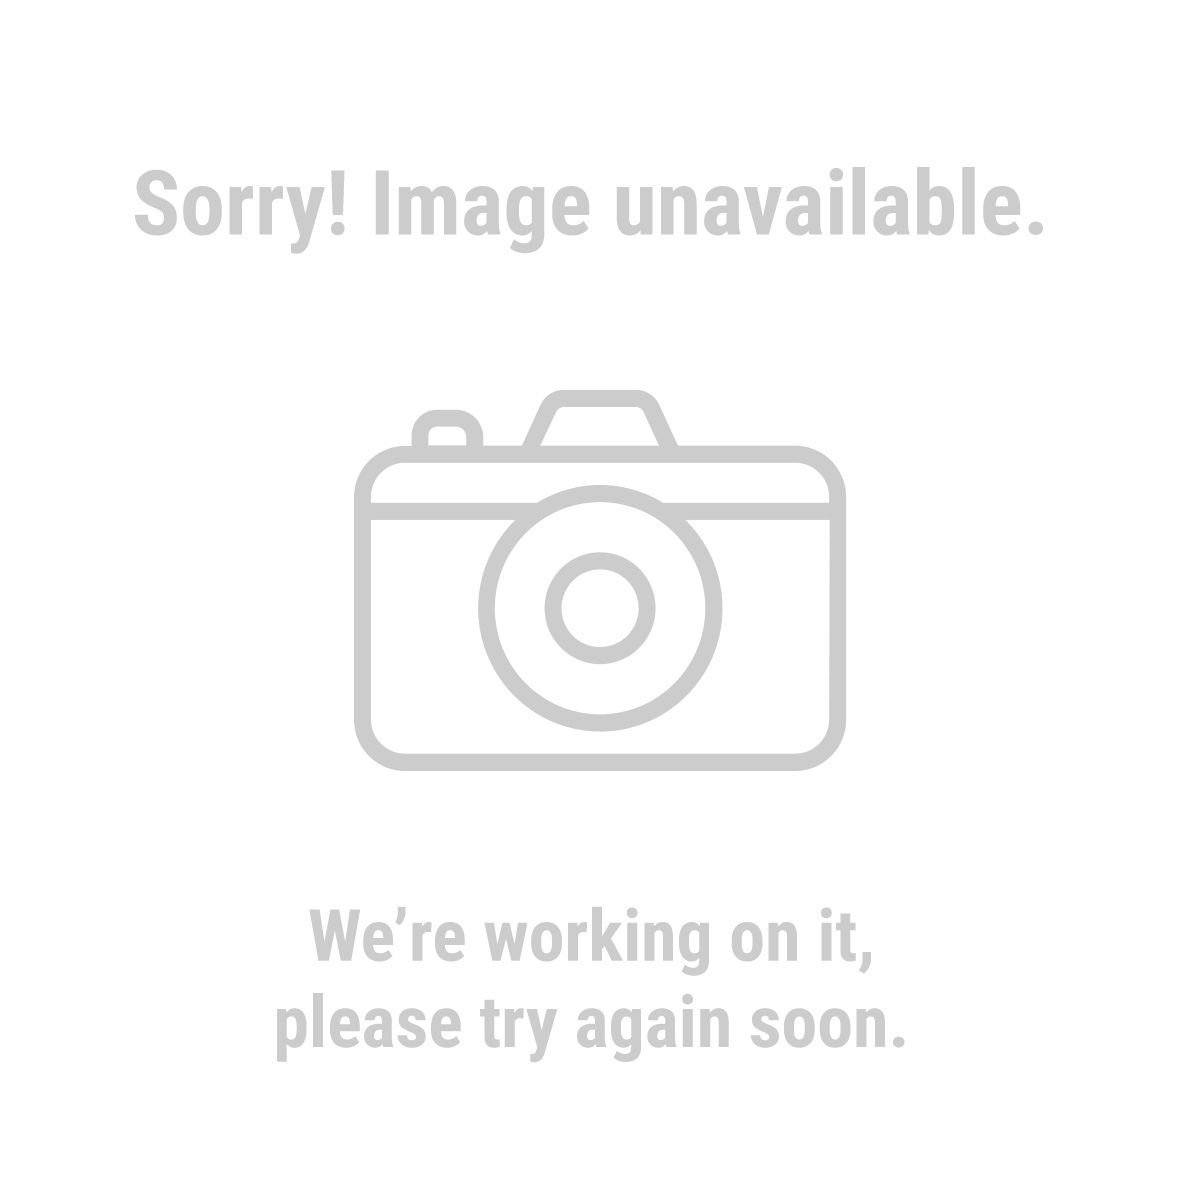 Haul-Master® 61287 16 ft. E-Track Tie Down Strap